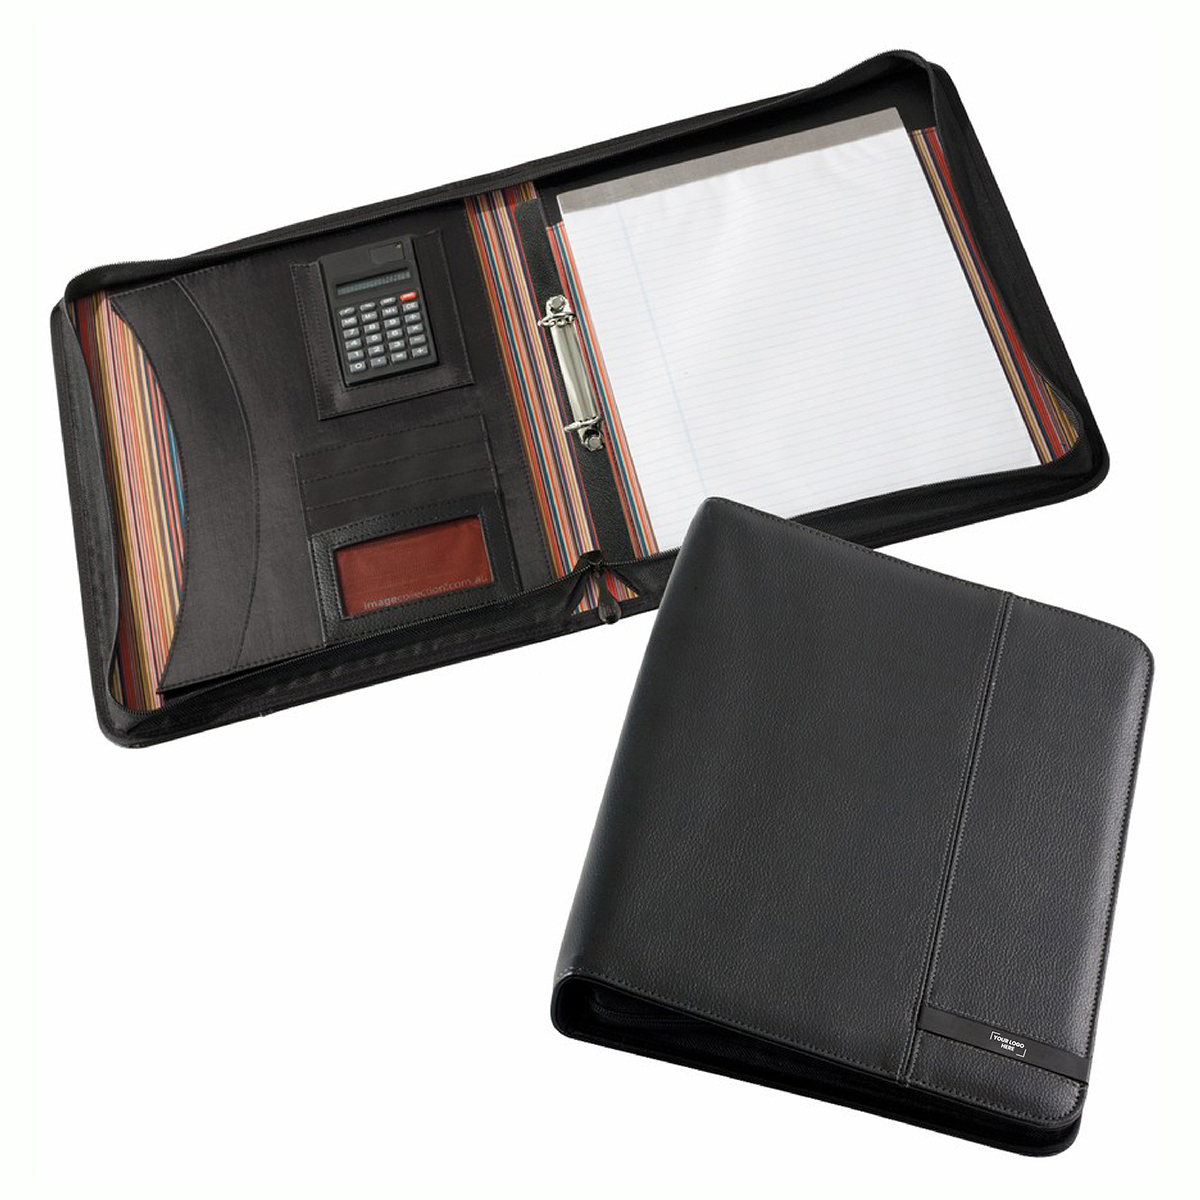 Madrid A4 Zippered Compendium with Calculator (D995_PB)